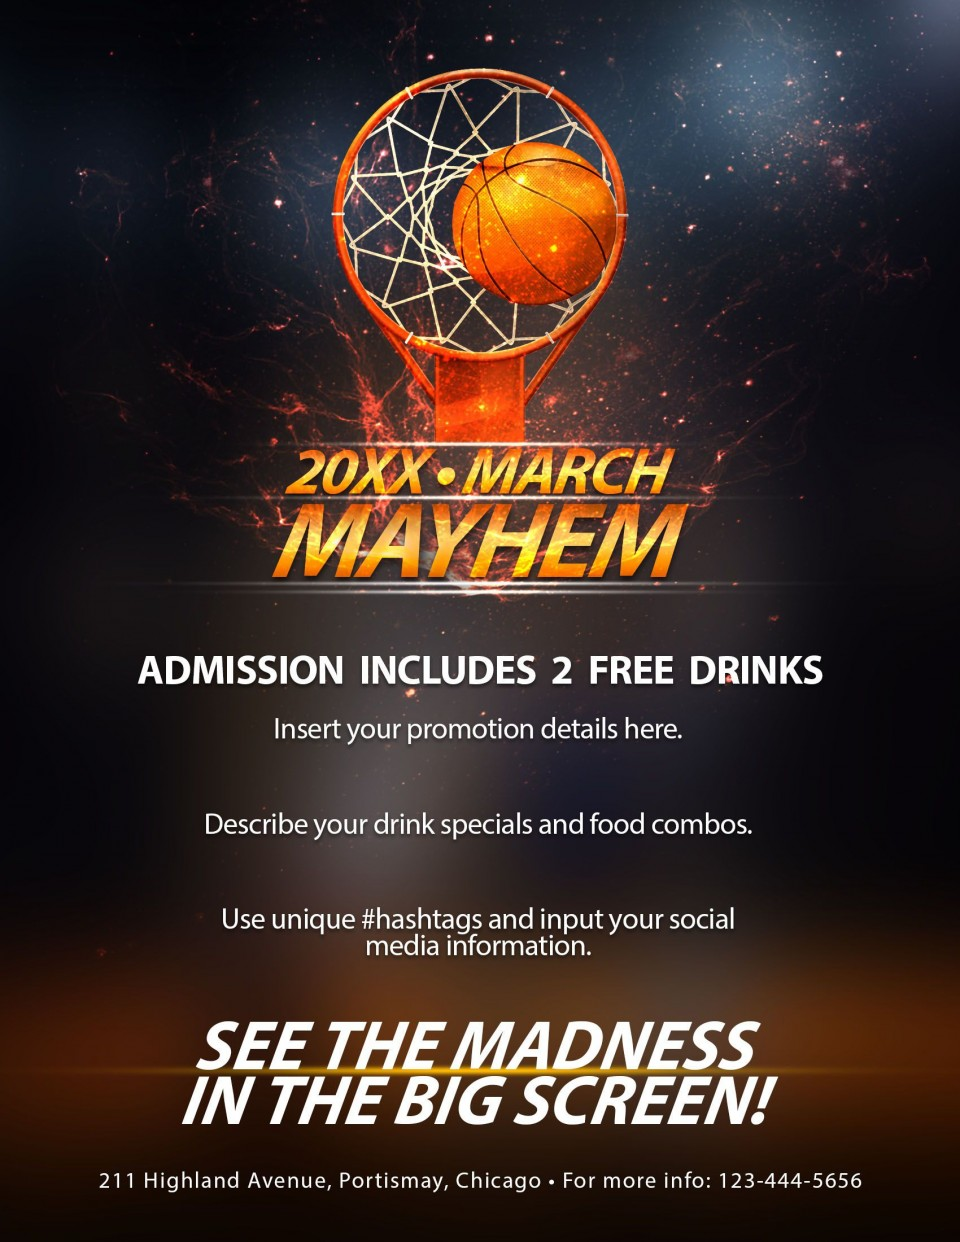 006 Surprising Free Basketball Flyer Template Design  Game 3 On Tournament Word960